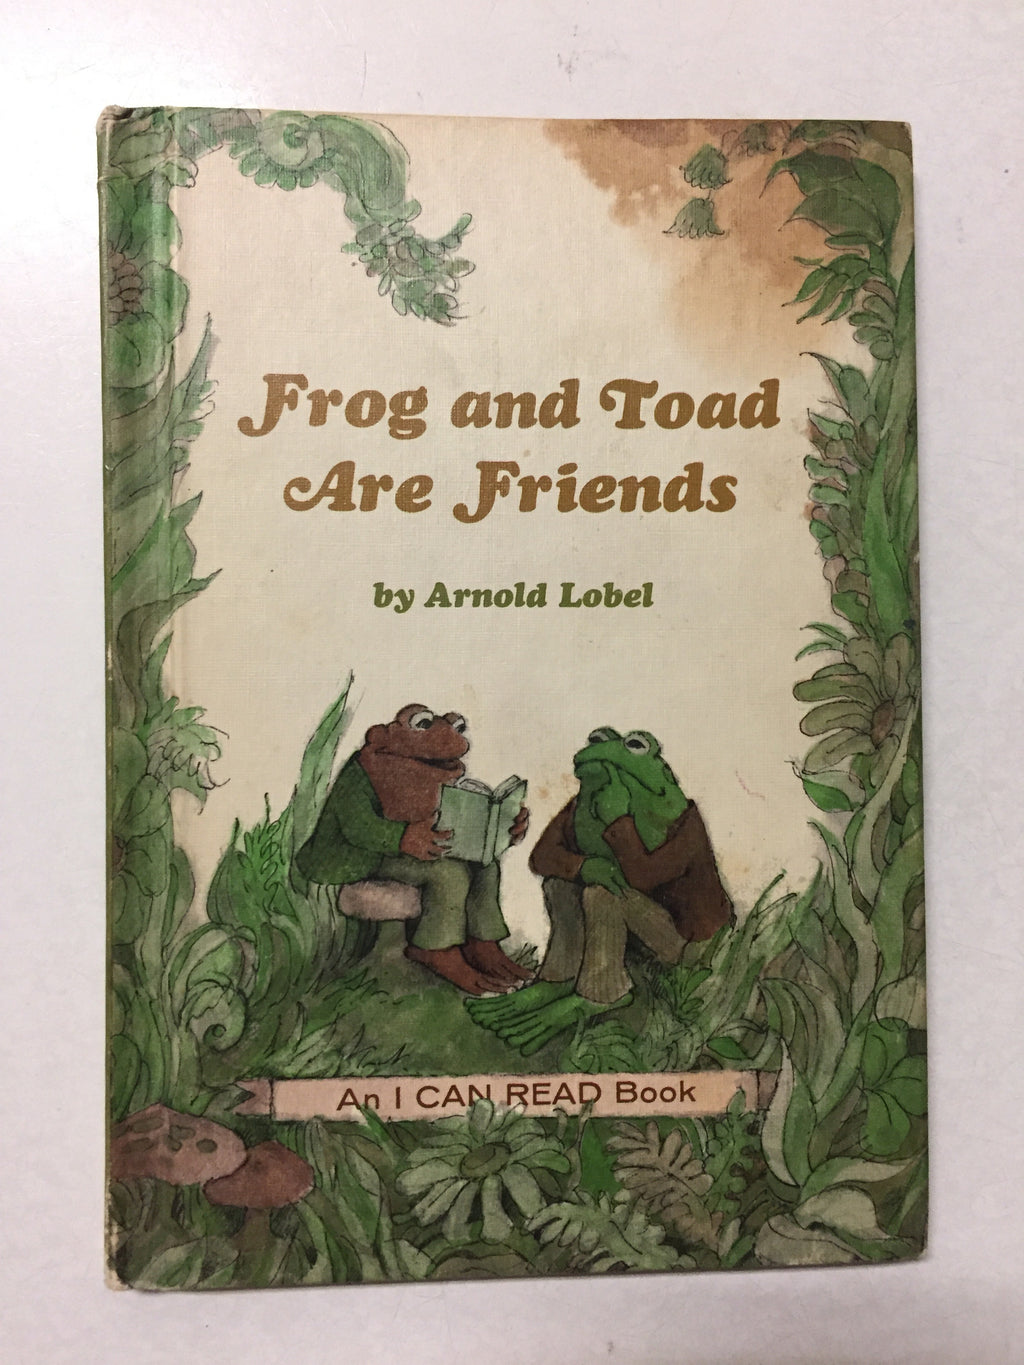 Frog and Toad Are Friends - Slick Cat Books